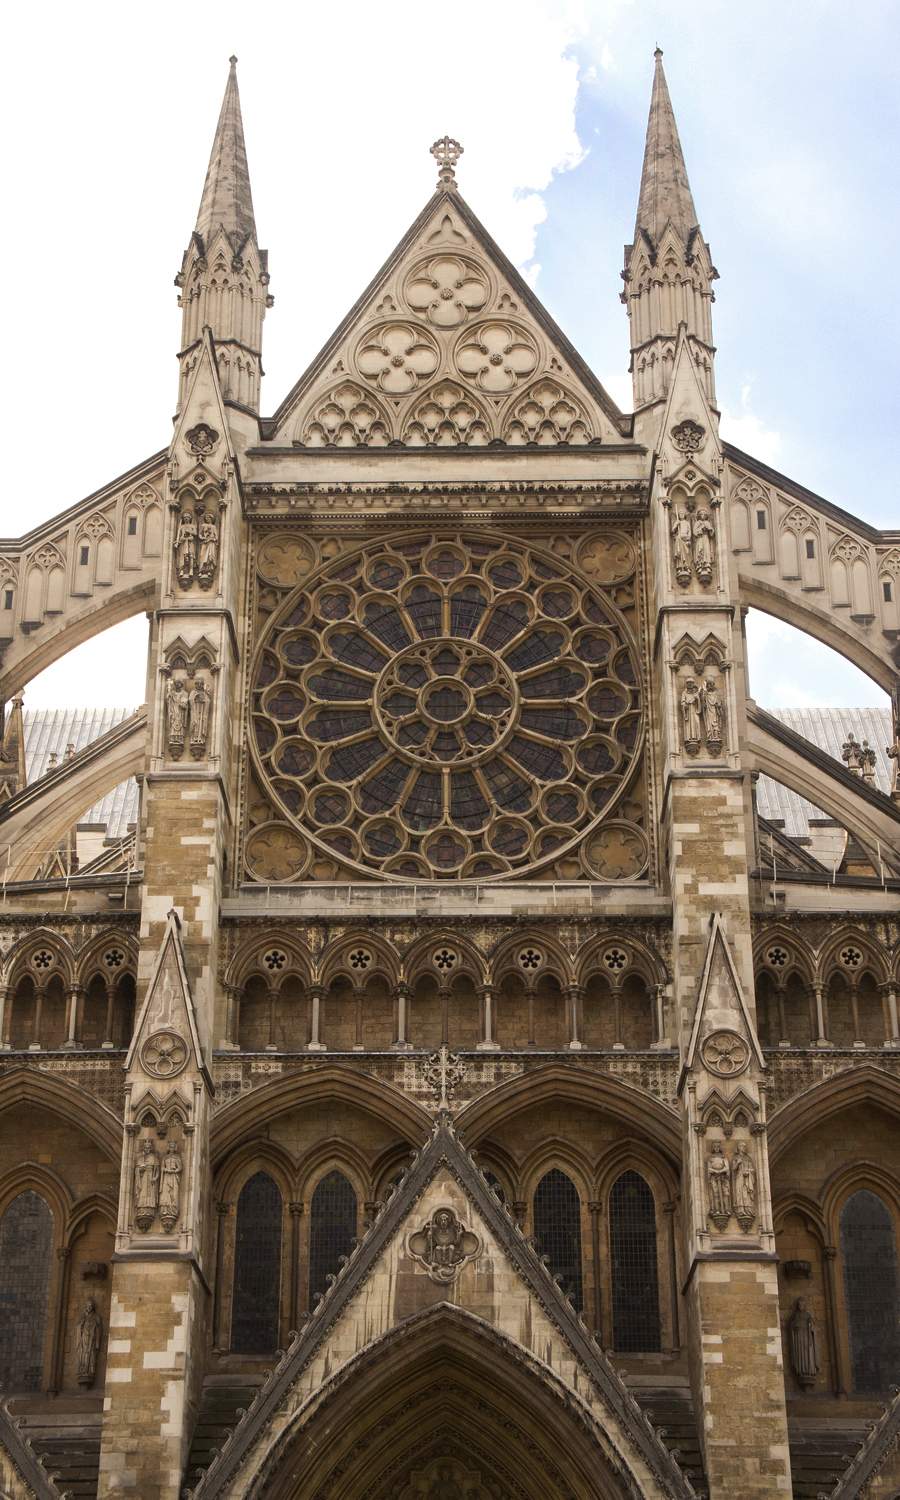 2014-europe-london-westminster-abbey-02